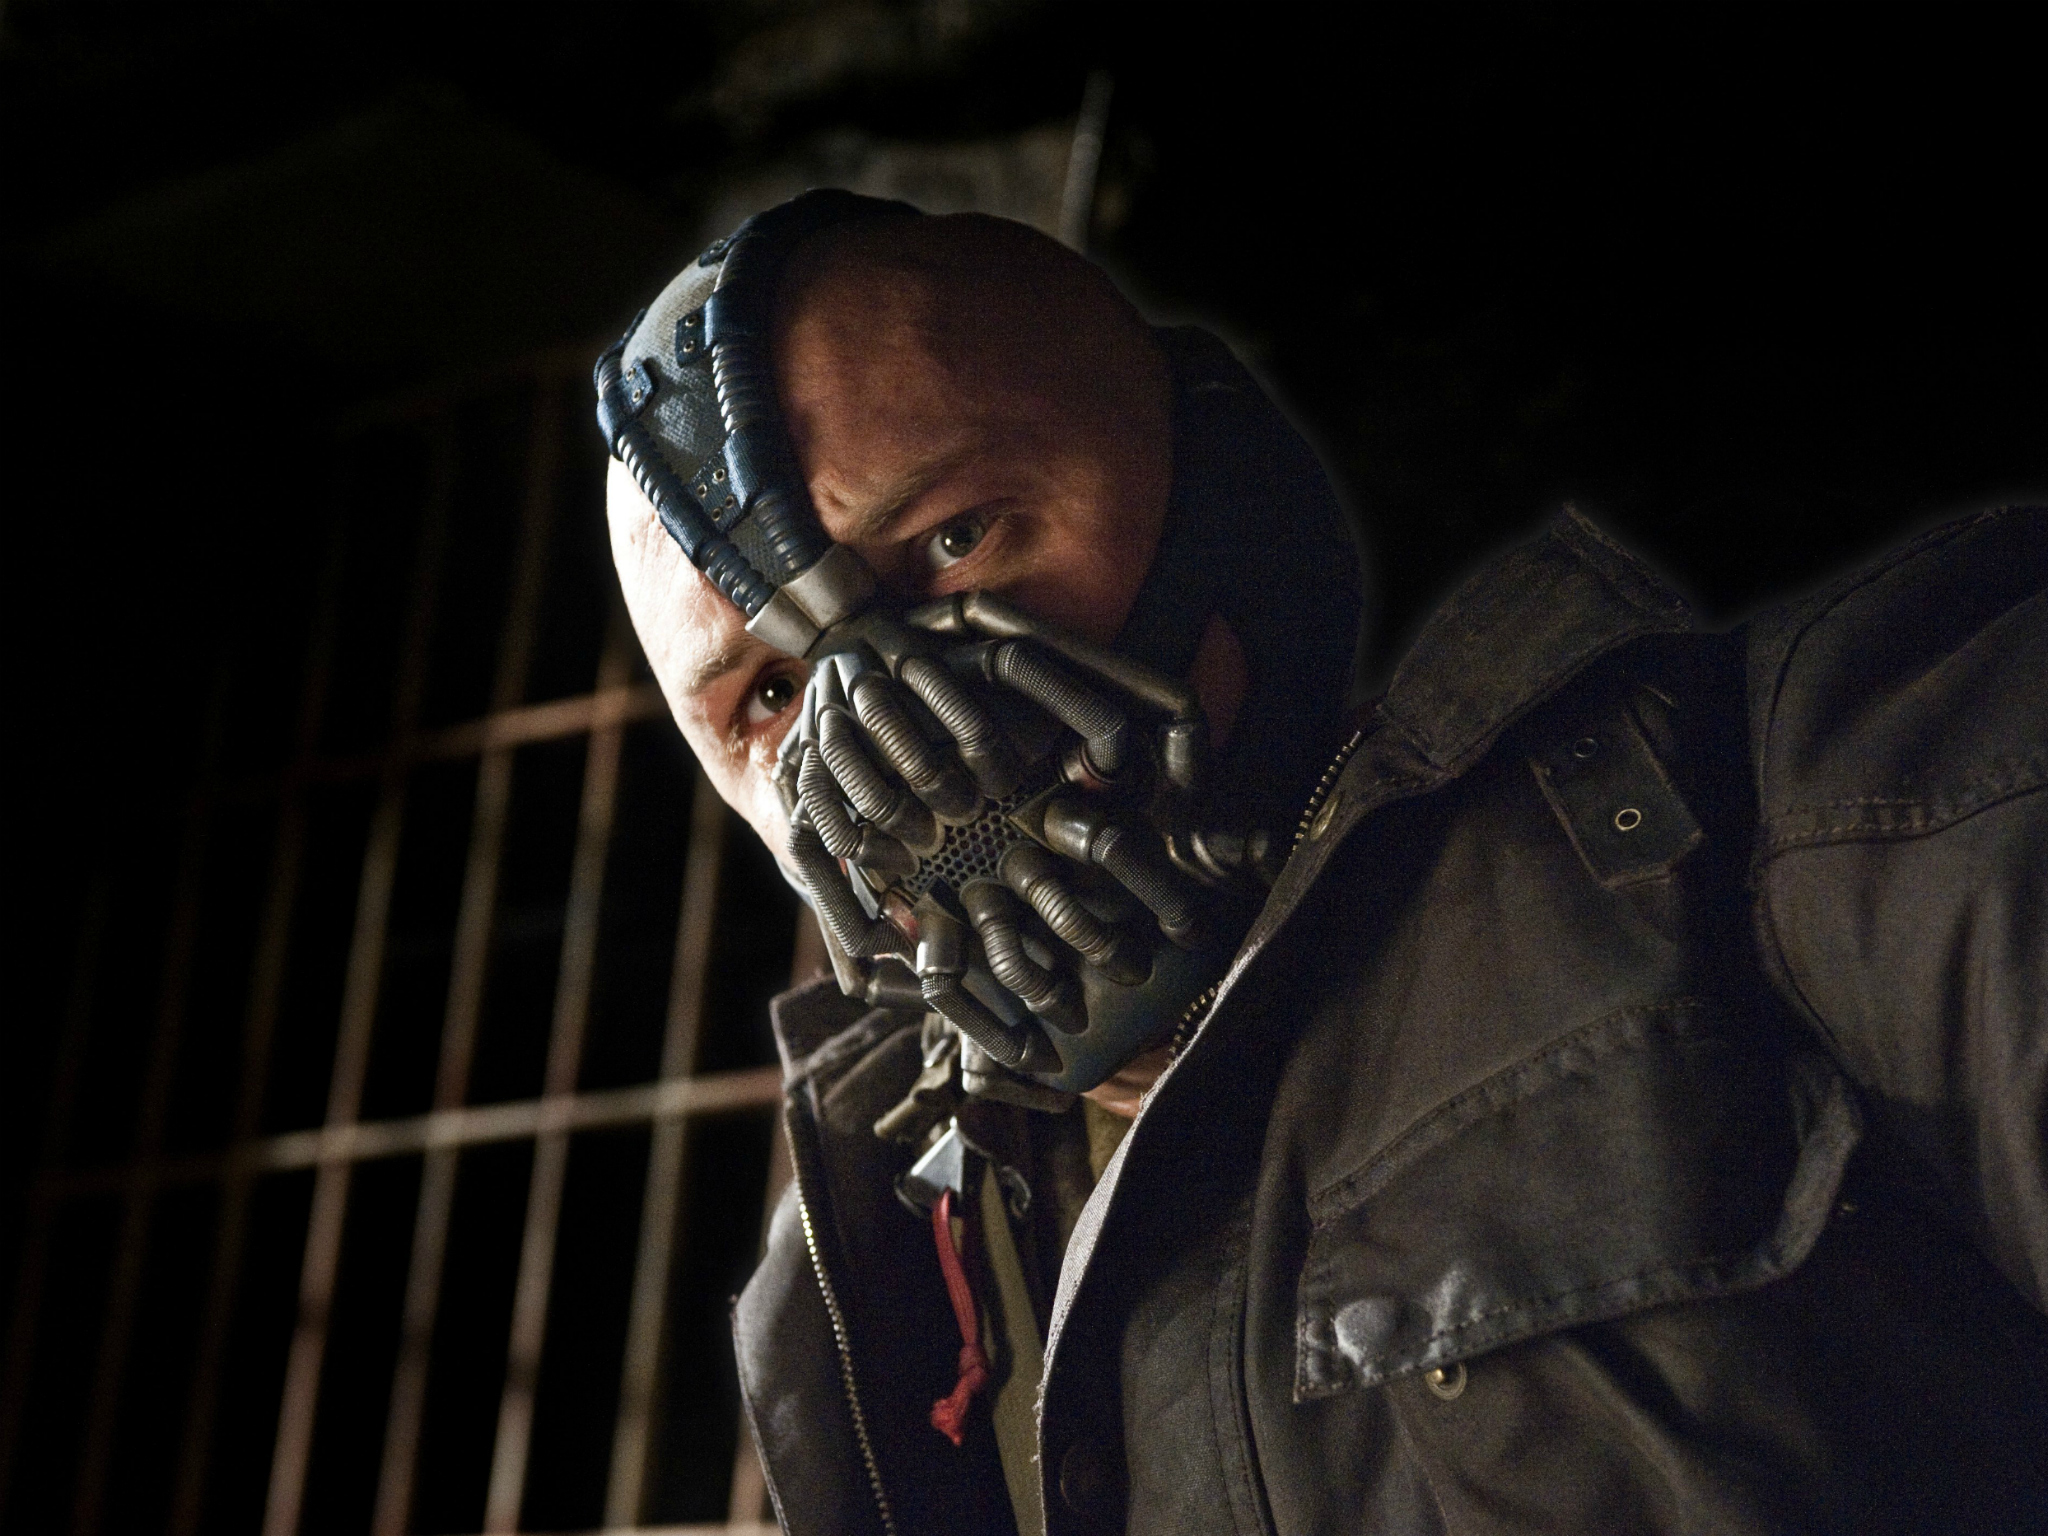 50 Great British Actors, The Dark Knight Rises..Featuring Tom Hardy as Bane. Warner Bros.